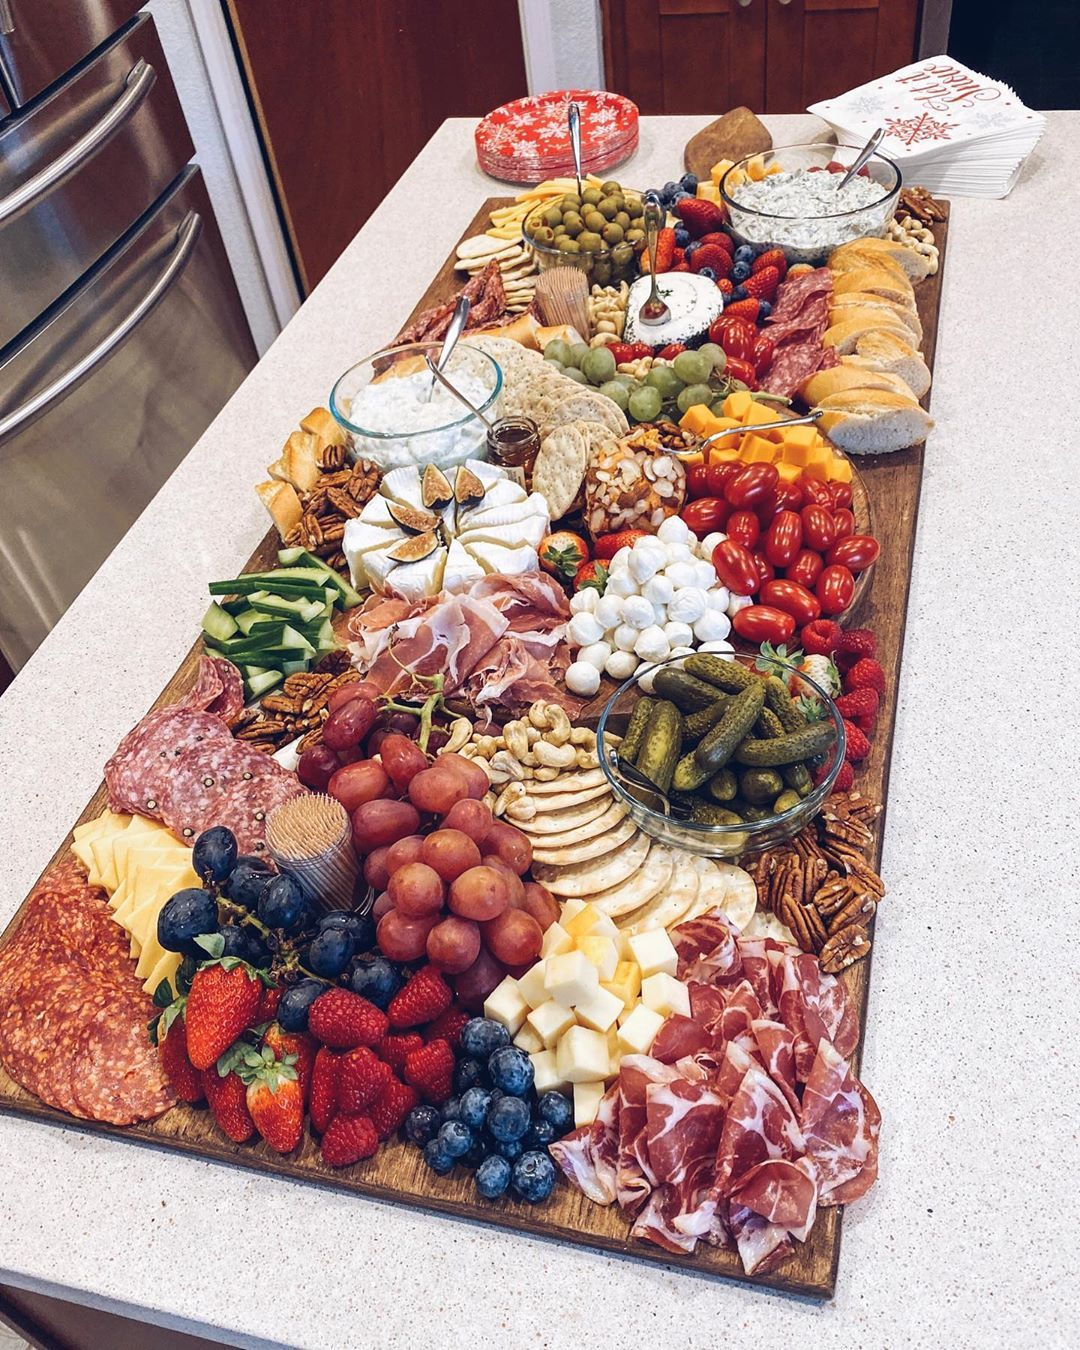 Hannah Mccarty Austin Tx On Instagram Here S The Charcuterie Board I Put Together Fo Party Trays Ideas Food Platters Party Food Platters Charcuterie Board